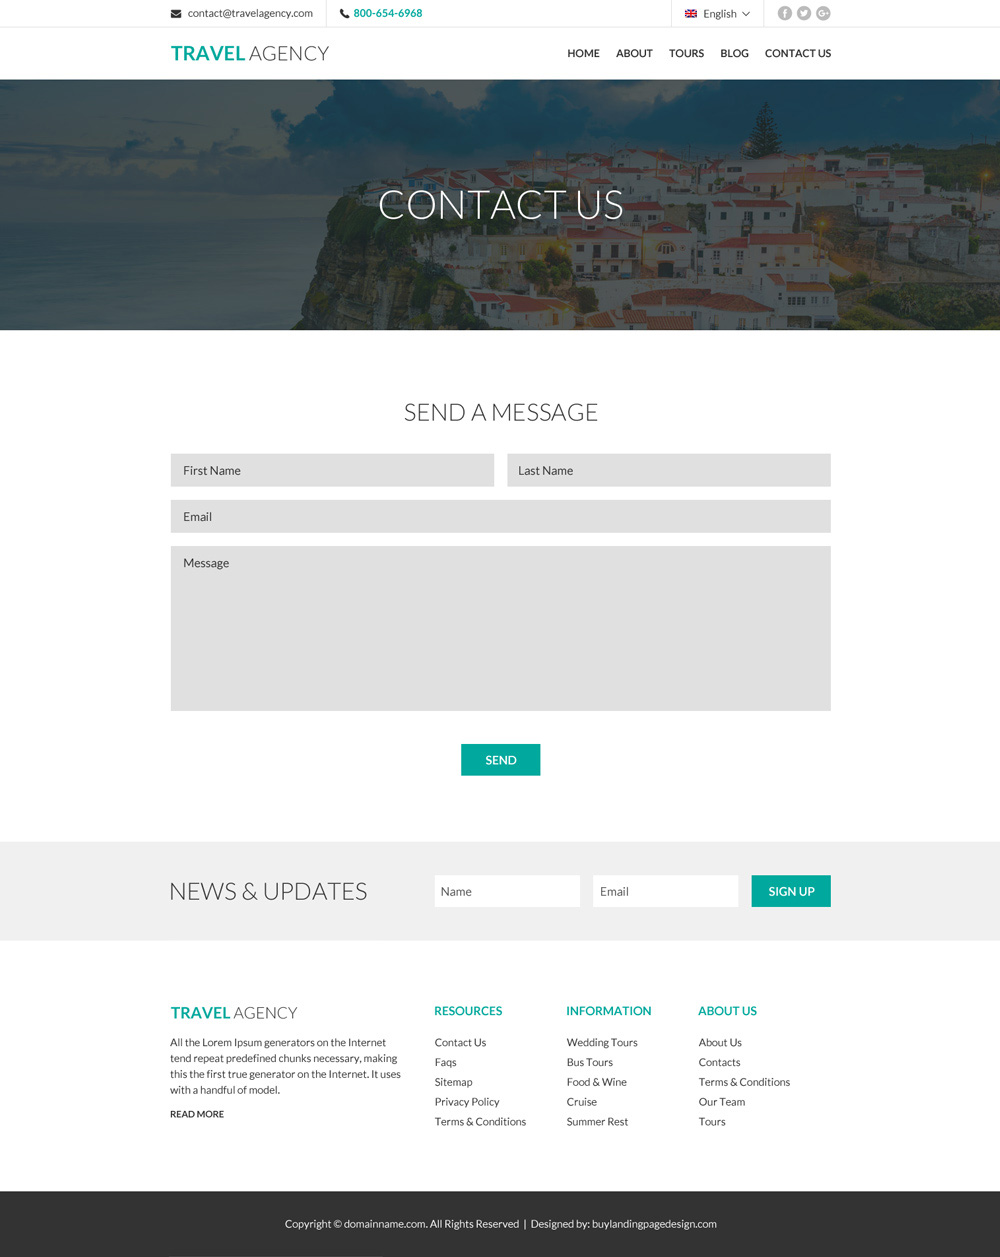 Travel Landing Page Design To Capture Lead And Boost Your Business